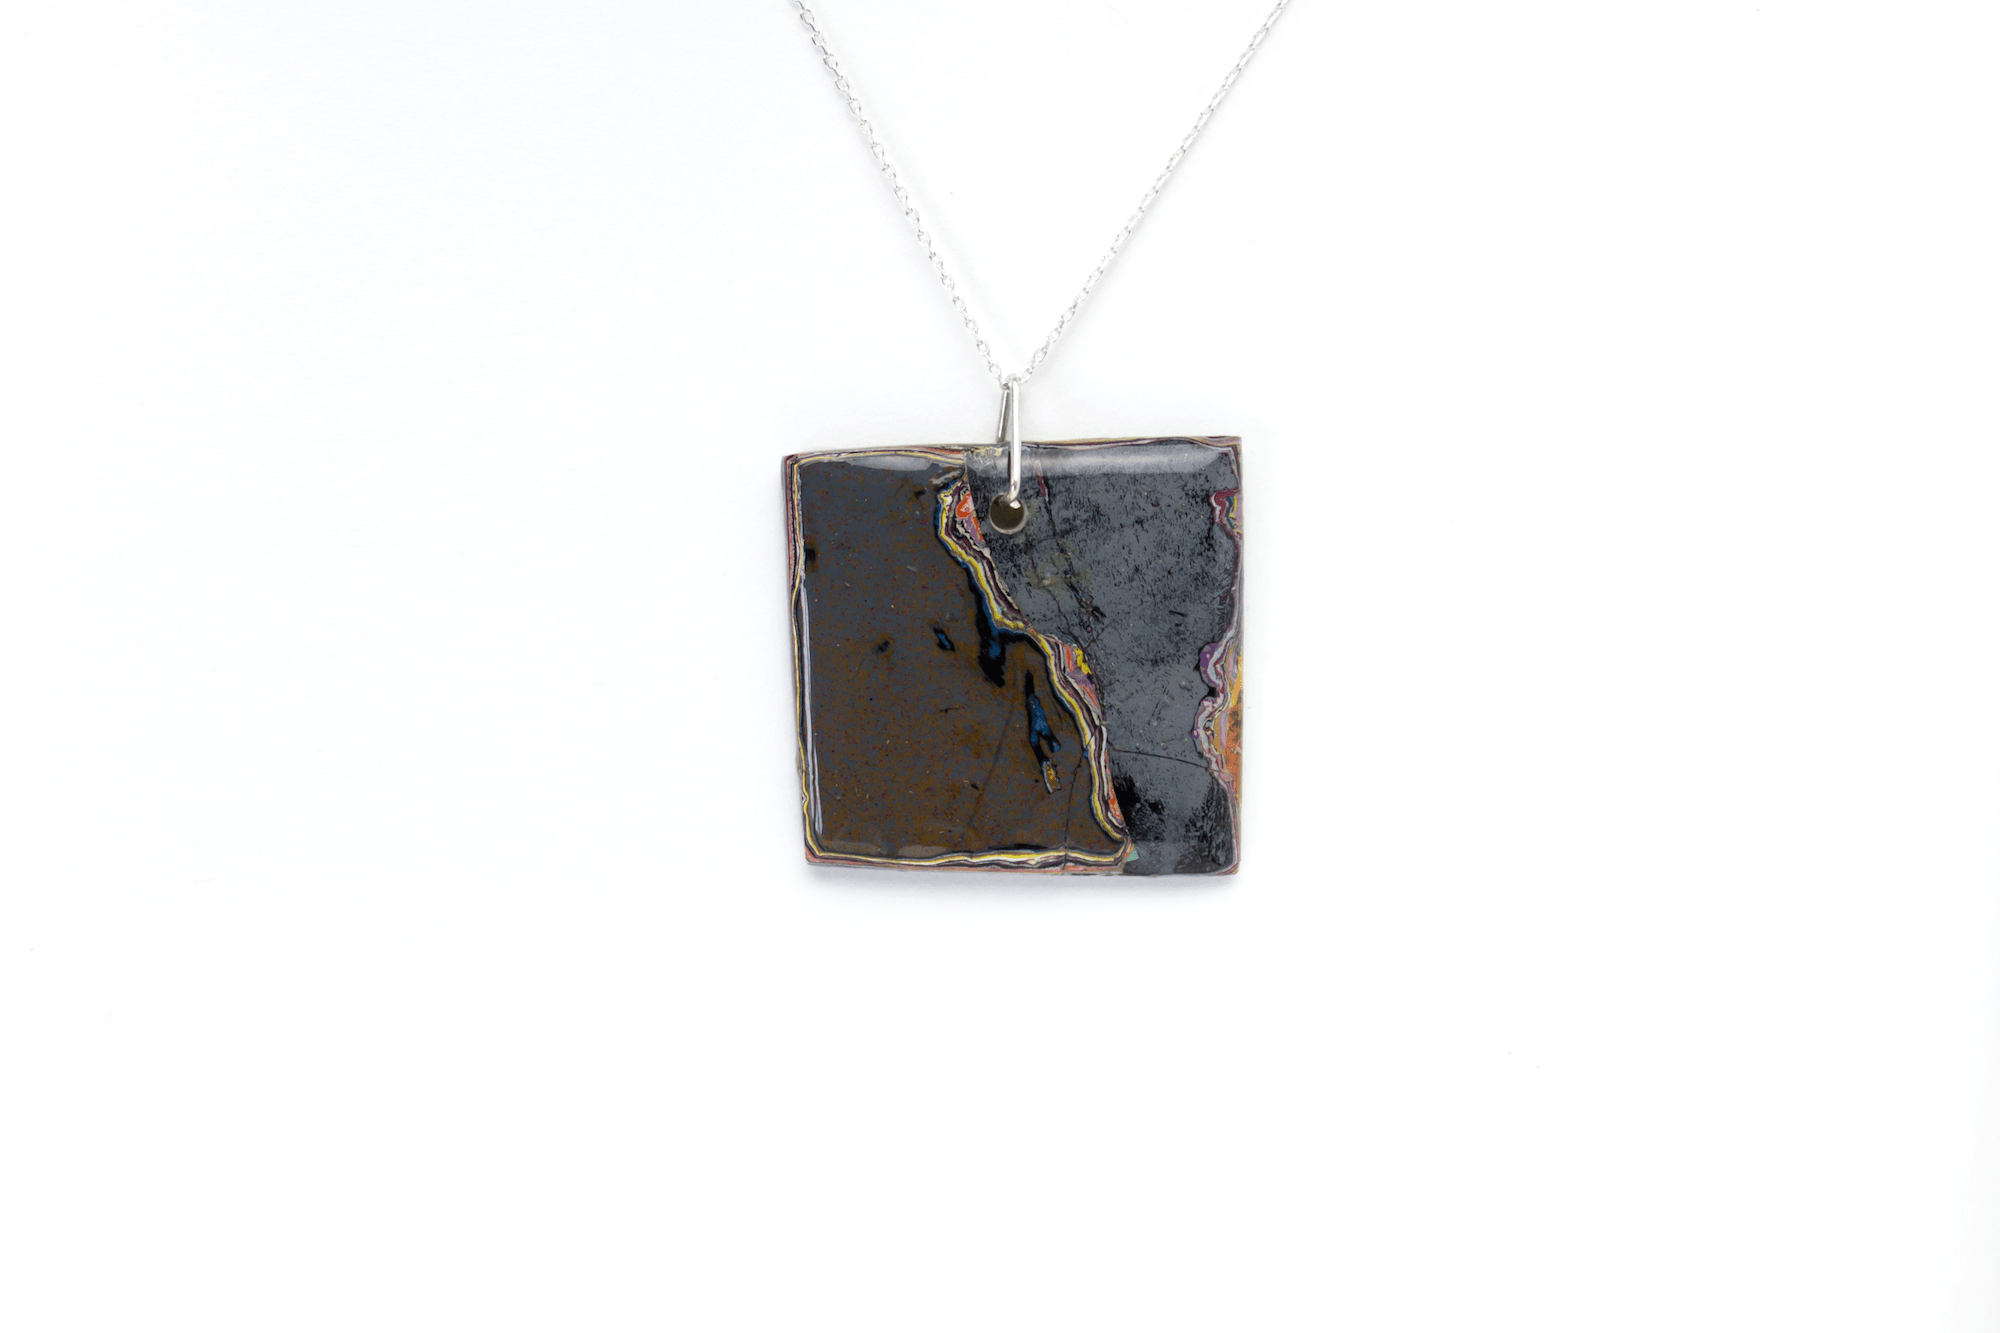 Unique graffiti stone pendant on sterling silver chain.